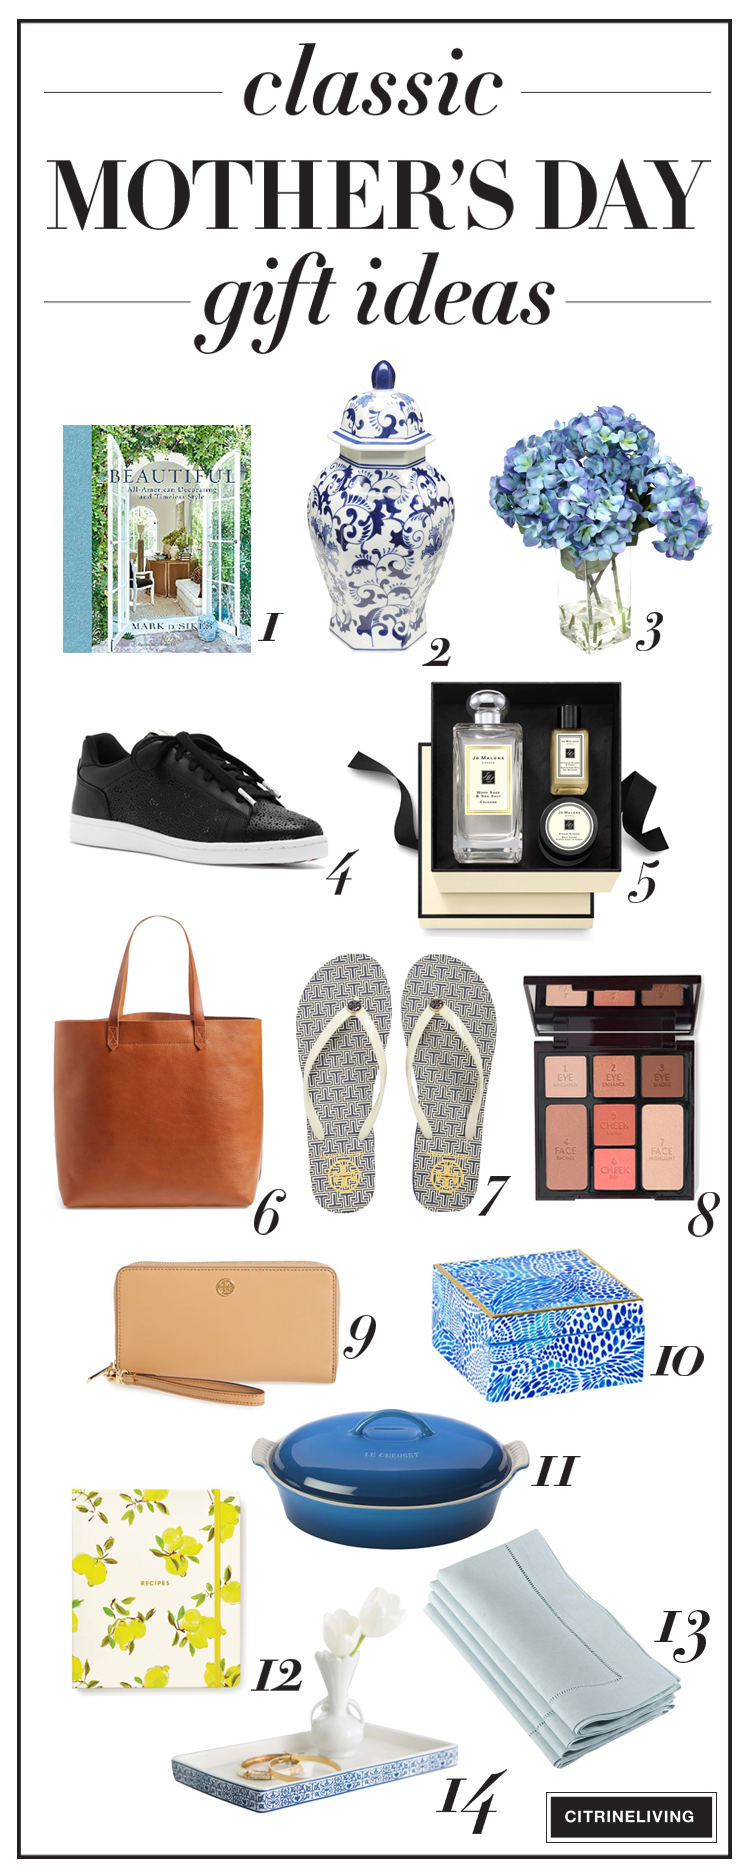 Classic Mother's Day gift ideas for mom or yourself, that are sure to become favorites for years to come!